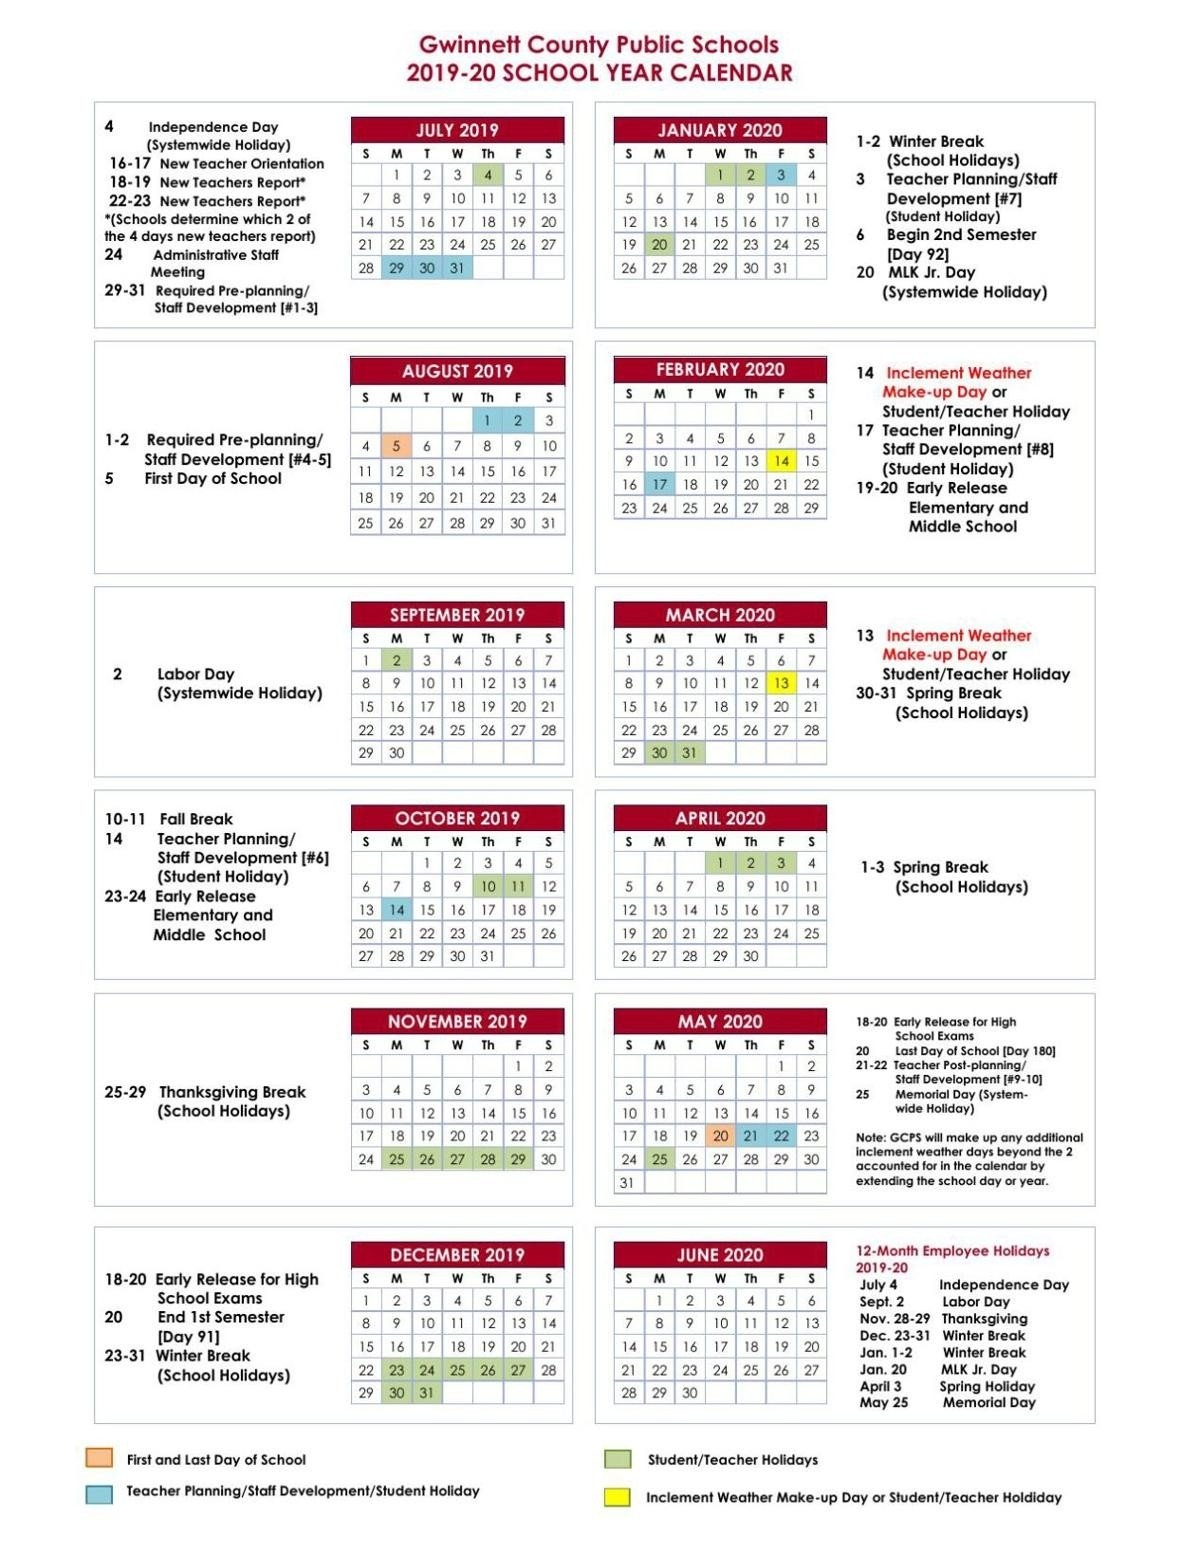 2018 2019 Calendar Approved 1 13 18 All Fulton County School School Calendar 2019-20 Broward